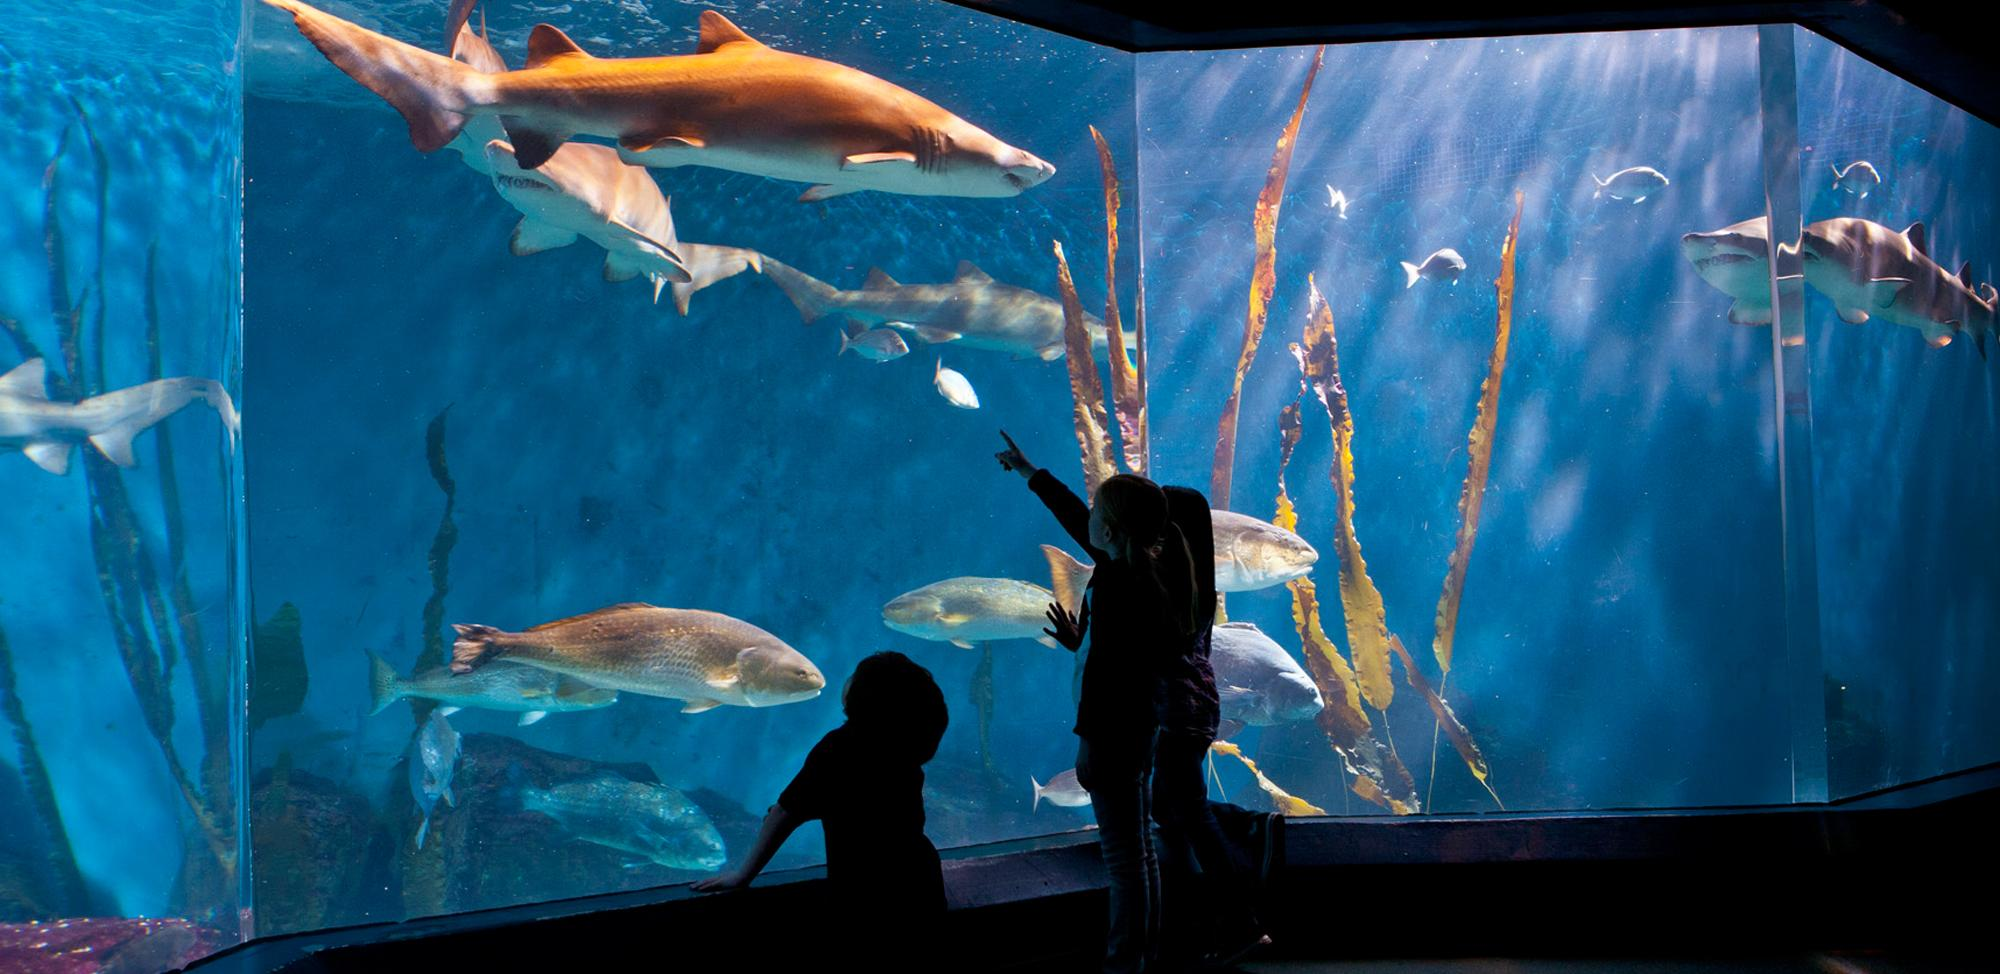 The Maritime Aquarium at Norwalk